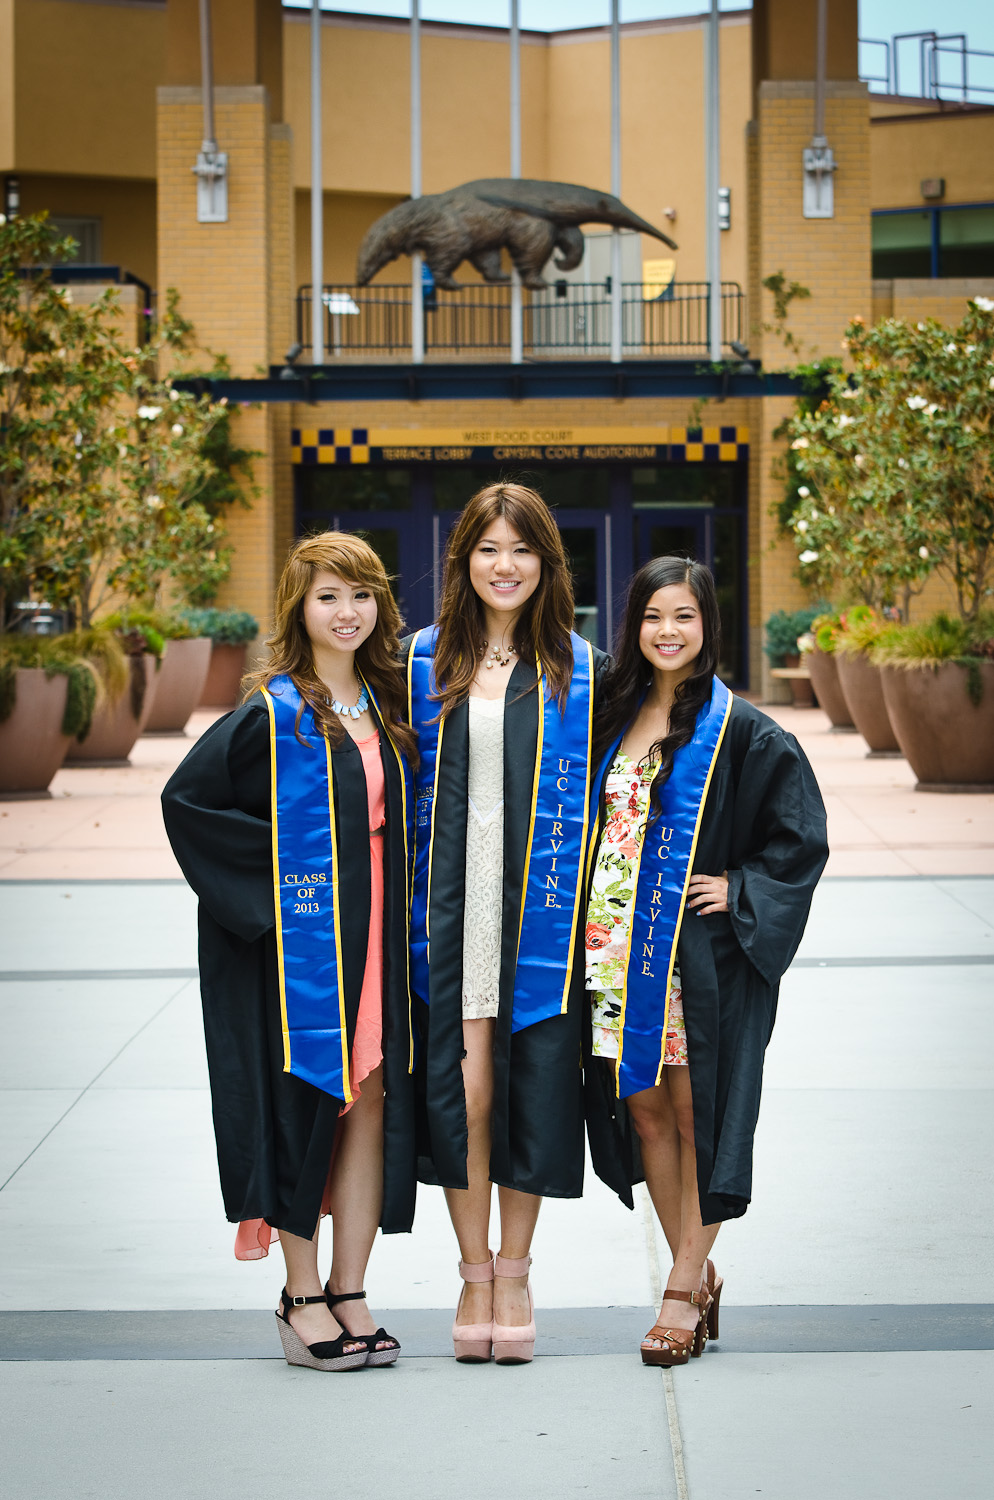 Bryan-Miraflor-Photography-Christine-Bea-Natasha-Grad-Portraits-Group-0041.jpg